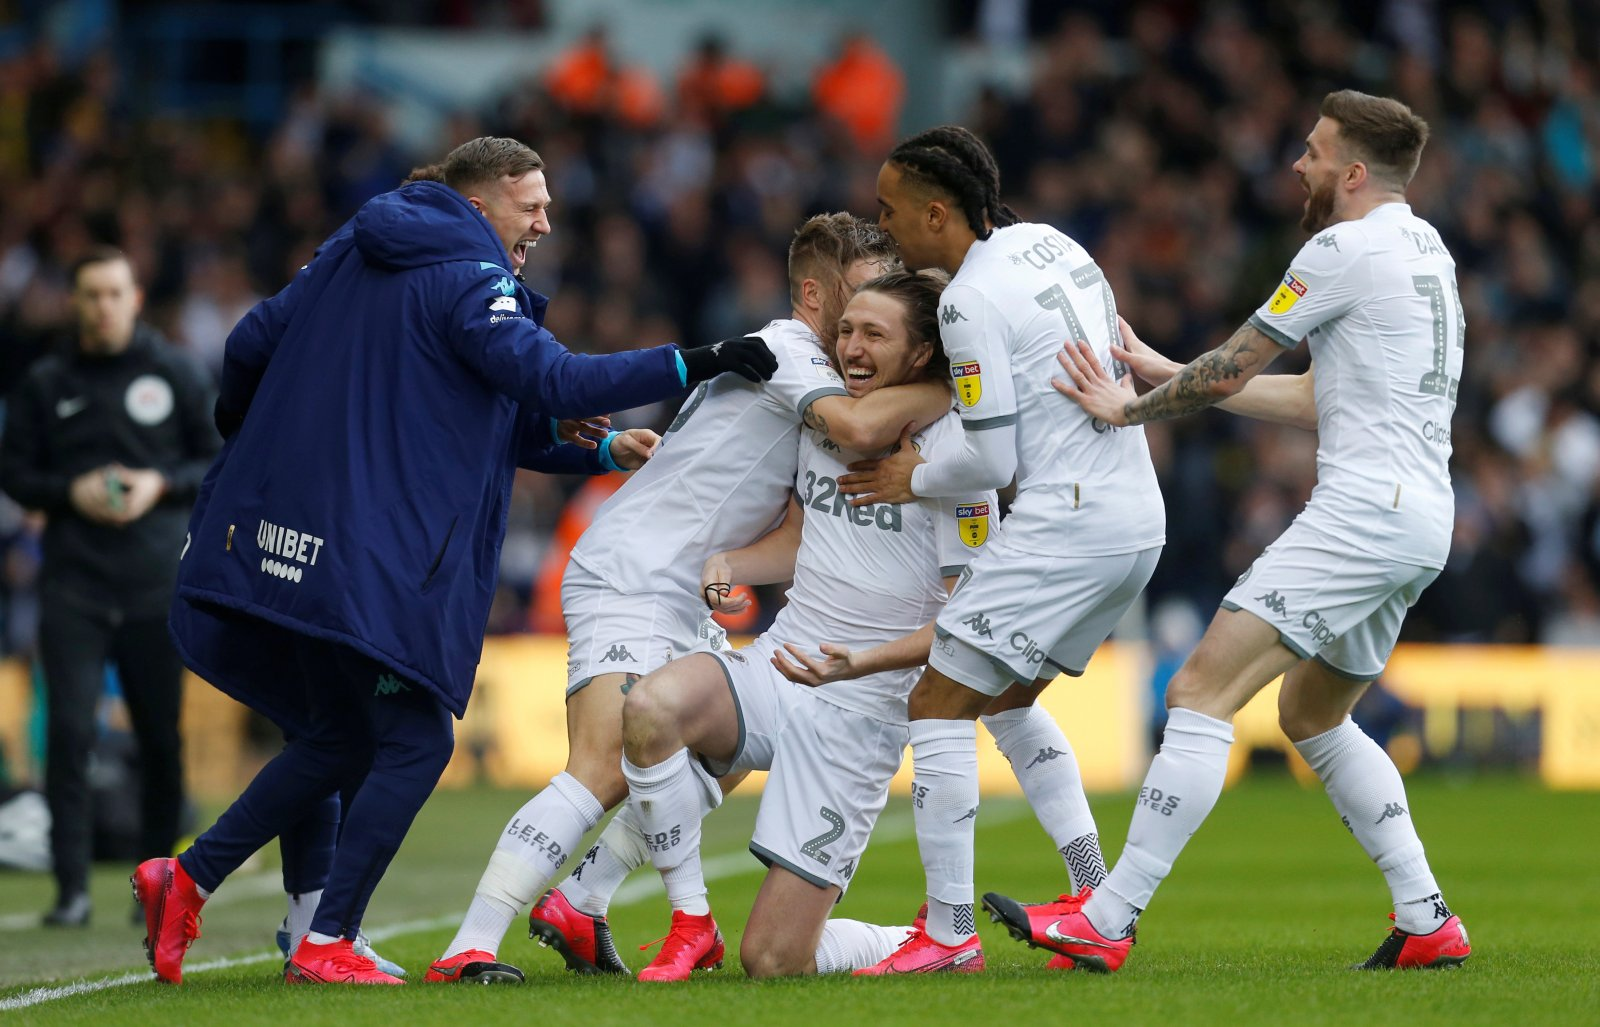 ICYMI: The 4 biggest Leeds United stories of the week gone by